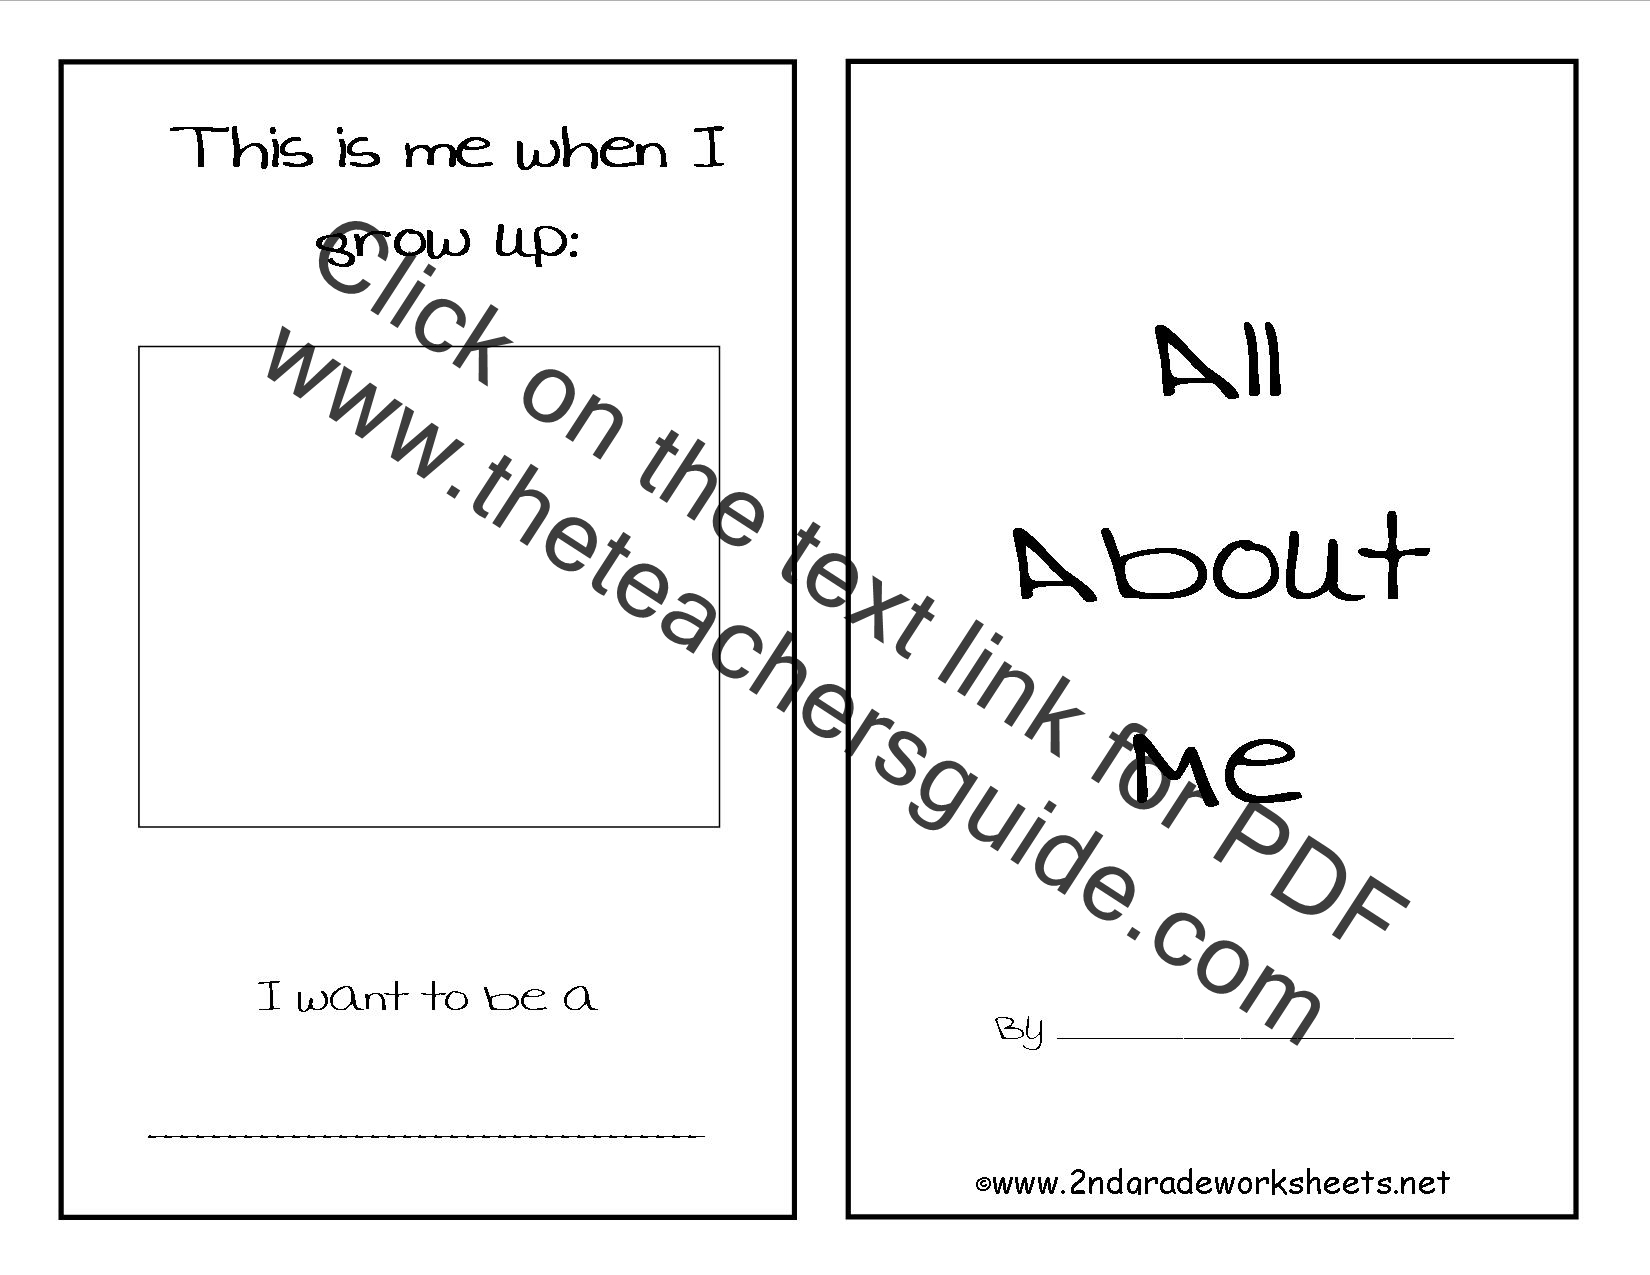 Printables Free Printable Back To School Worksheets free back to school worksheets and printouts all about me worksheet school